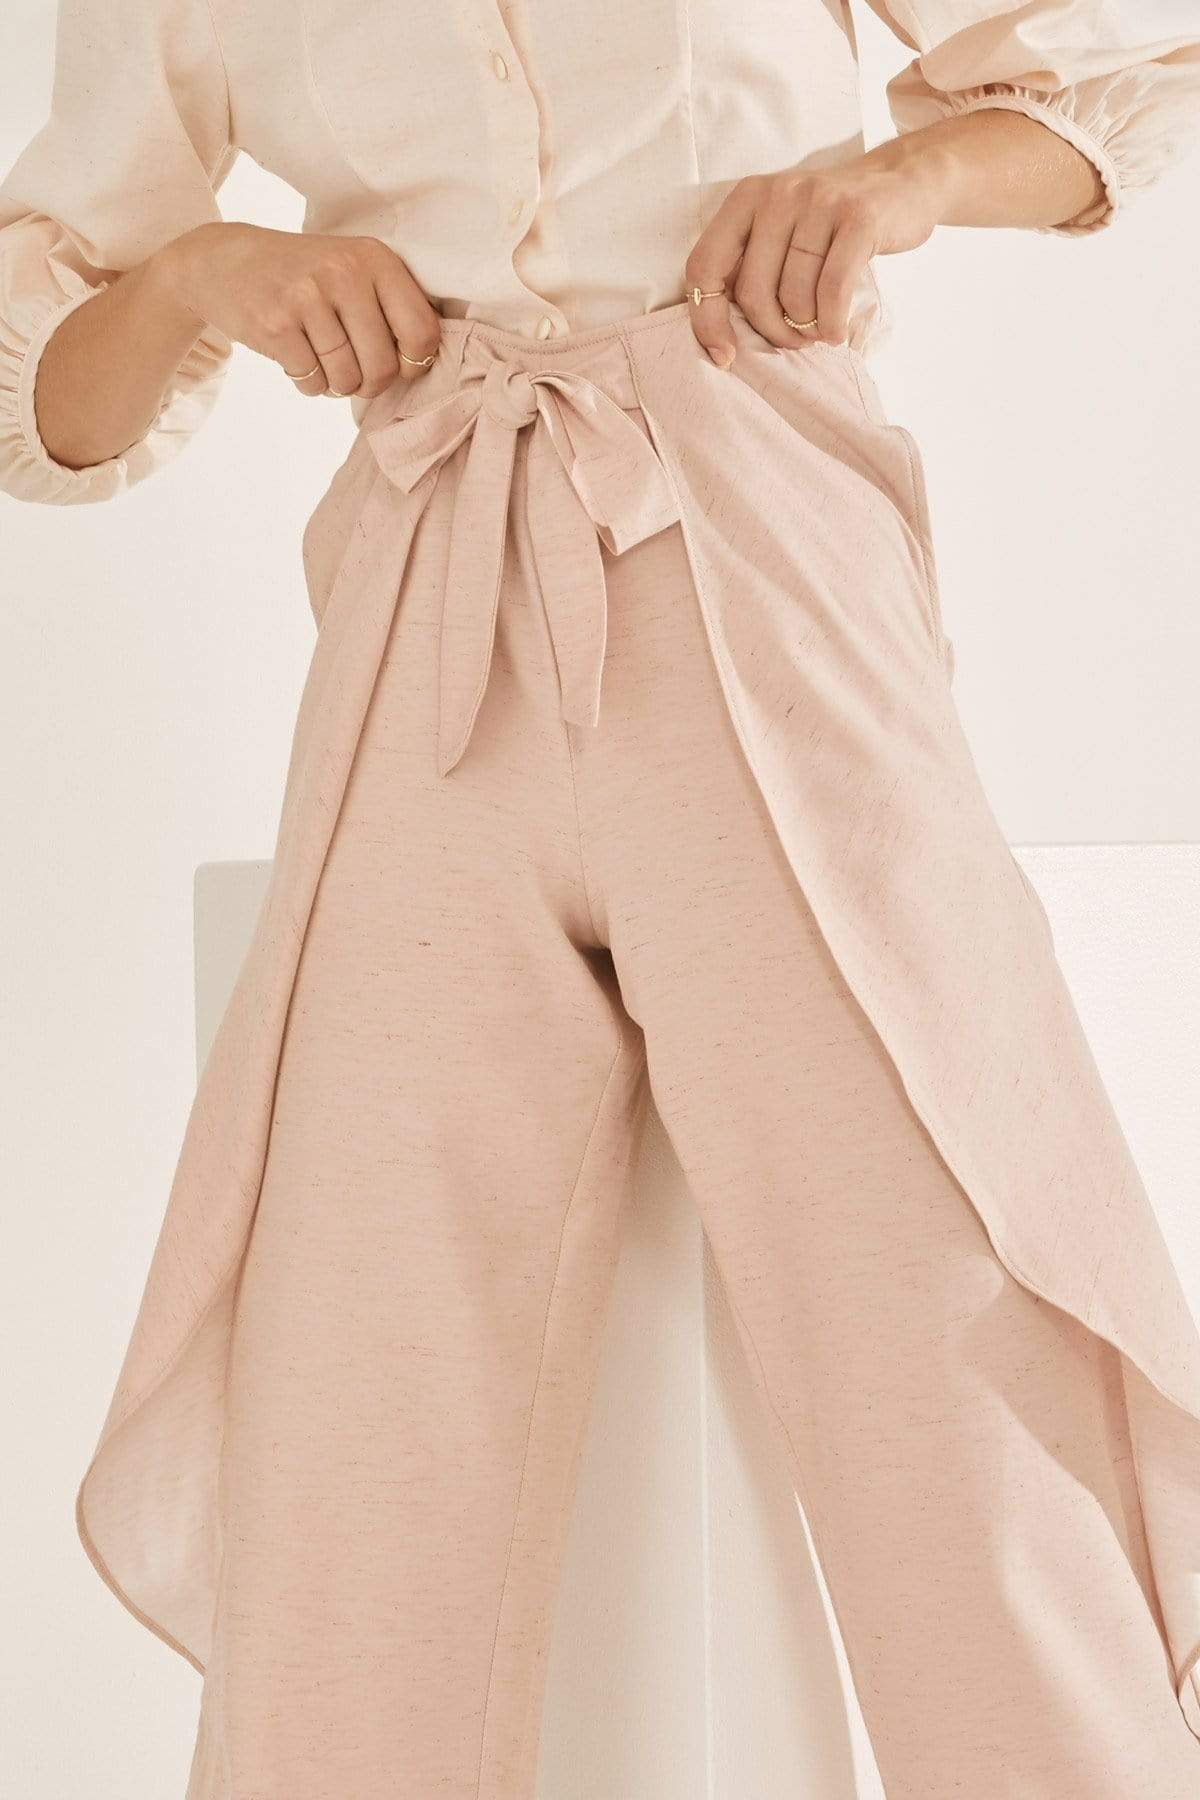 TAKTAI Pants S / Pink Sea Wind Wrap Pants